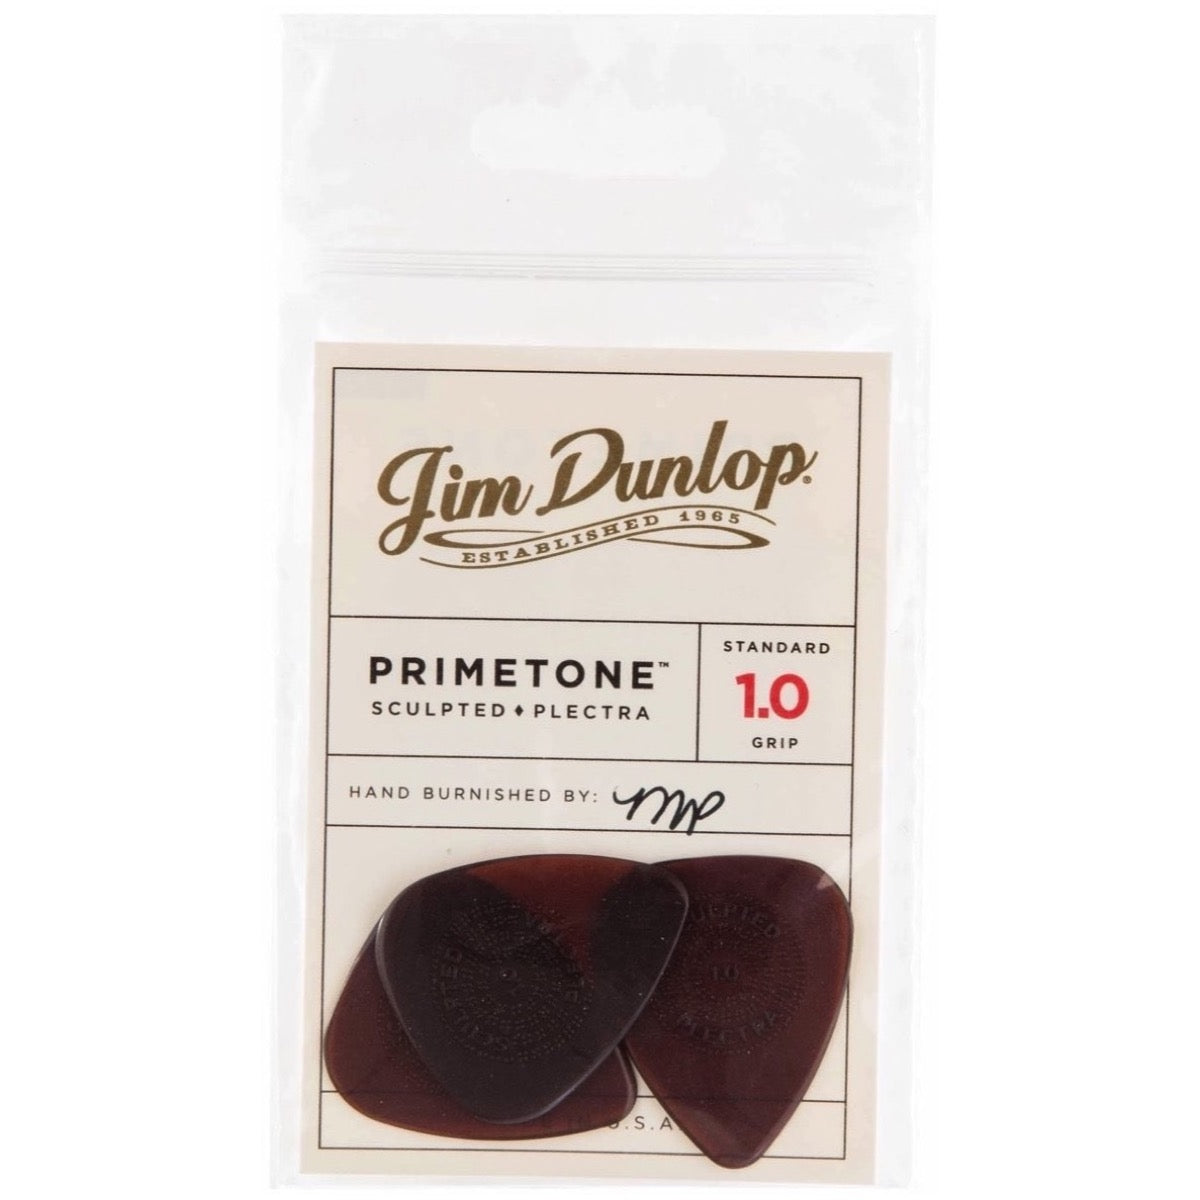 Dunlop 510P Primetone Standard Guitar Picks, 510P1.0, 3-Pack, 1.0mm